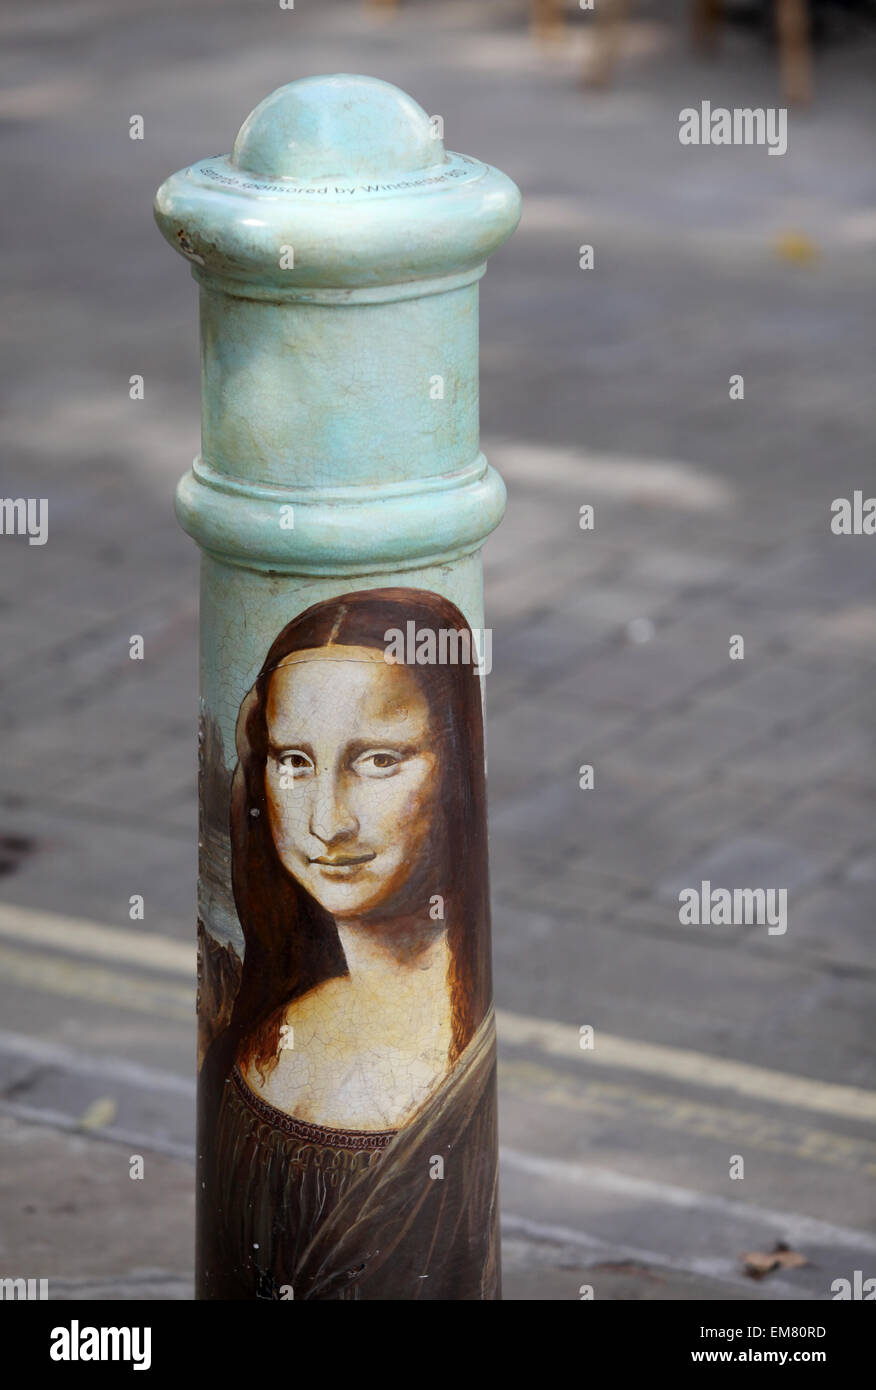 Mona Lisa painting on a bollard in The Square, Winchester funded by Winchester City Council - Stock Image